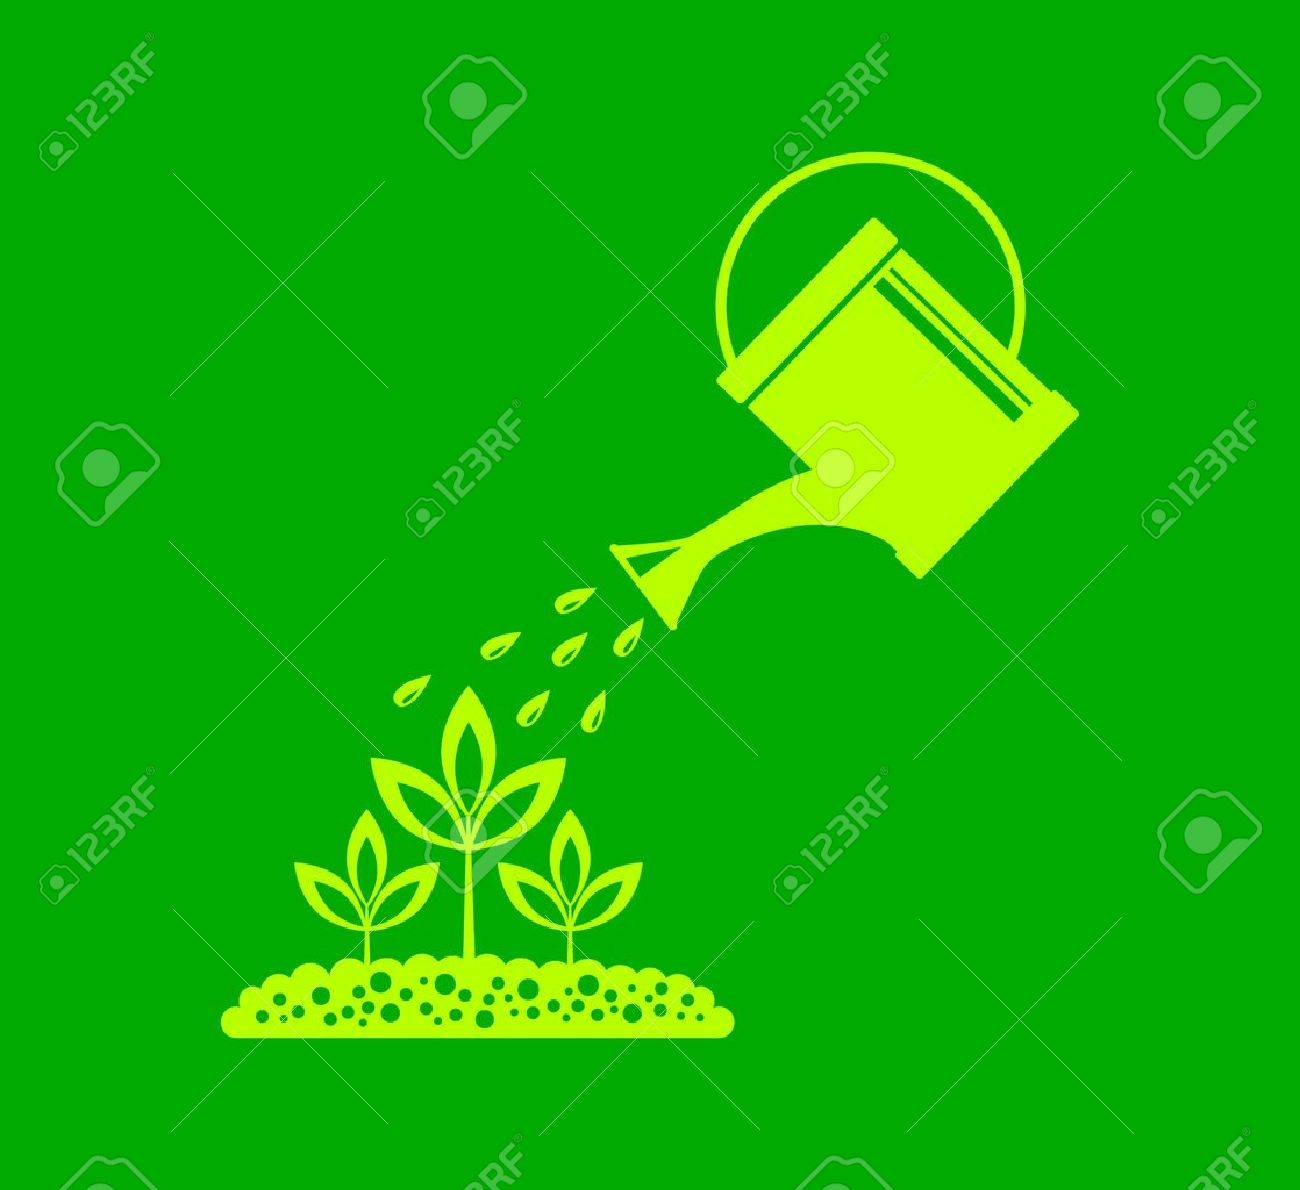 Watering can - 17536846